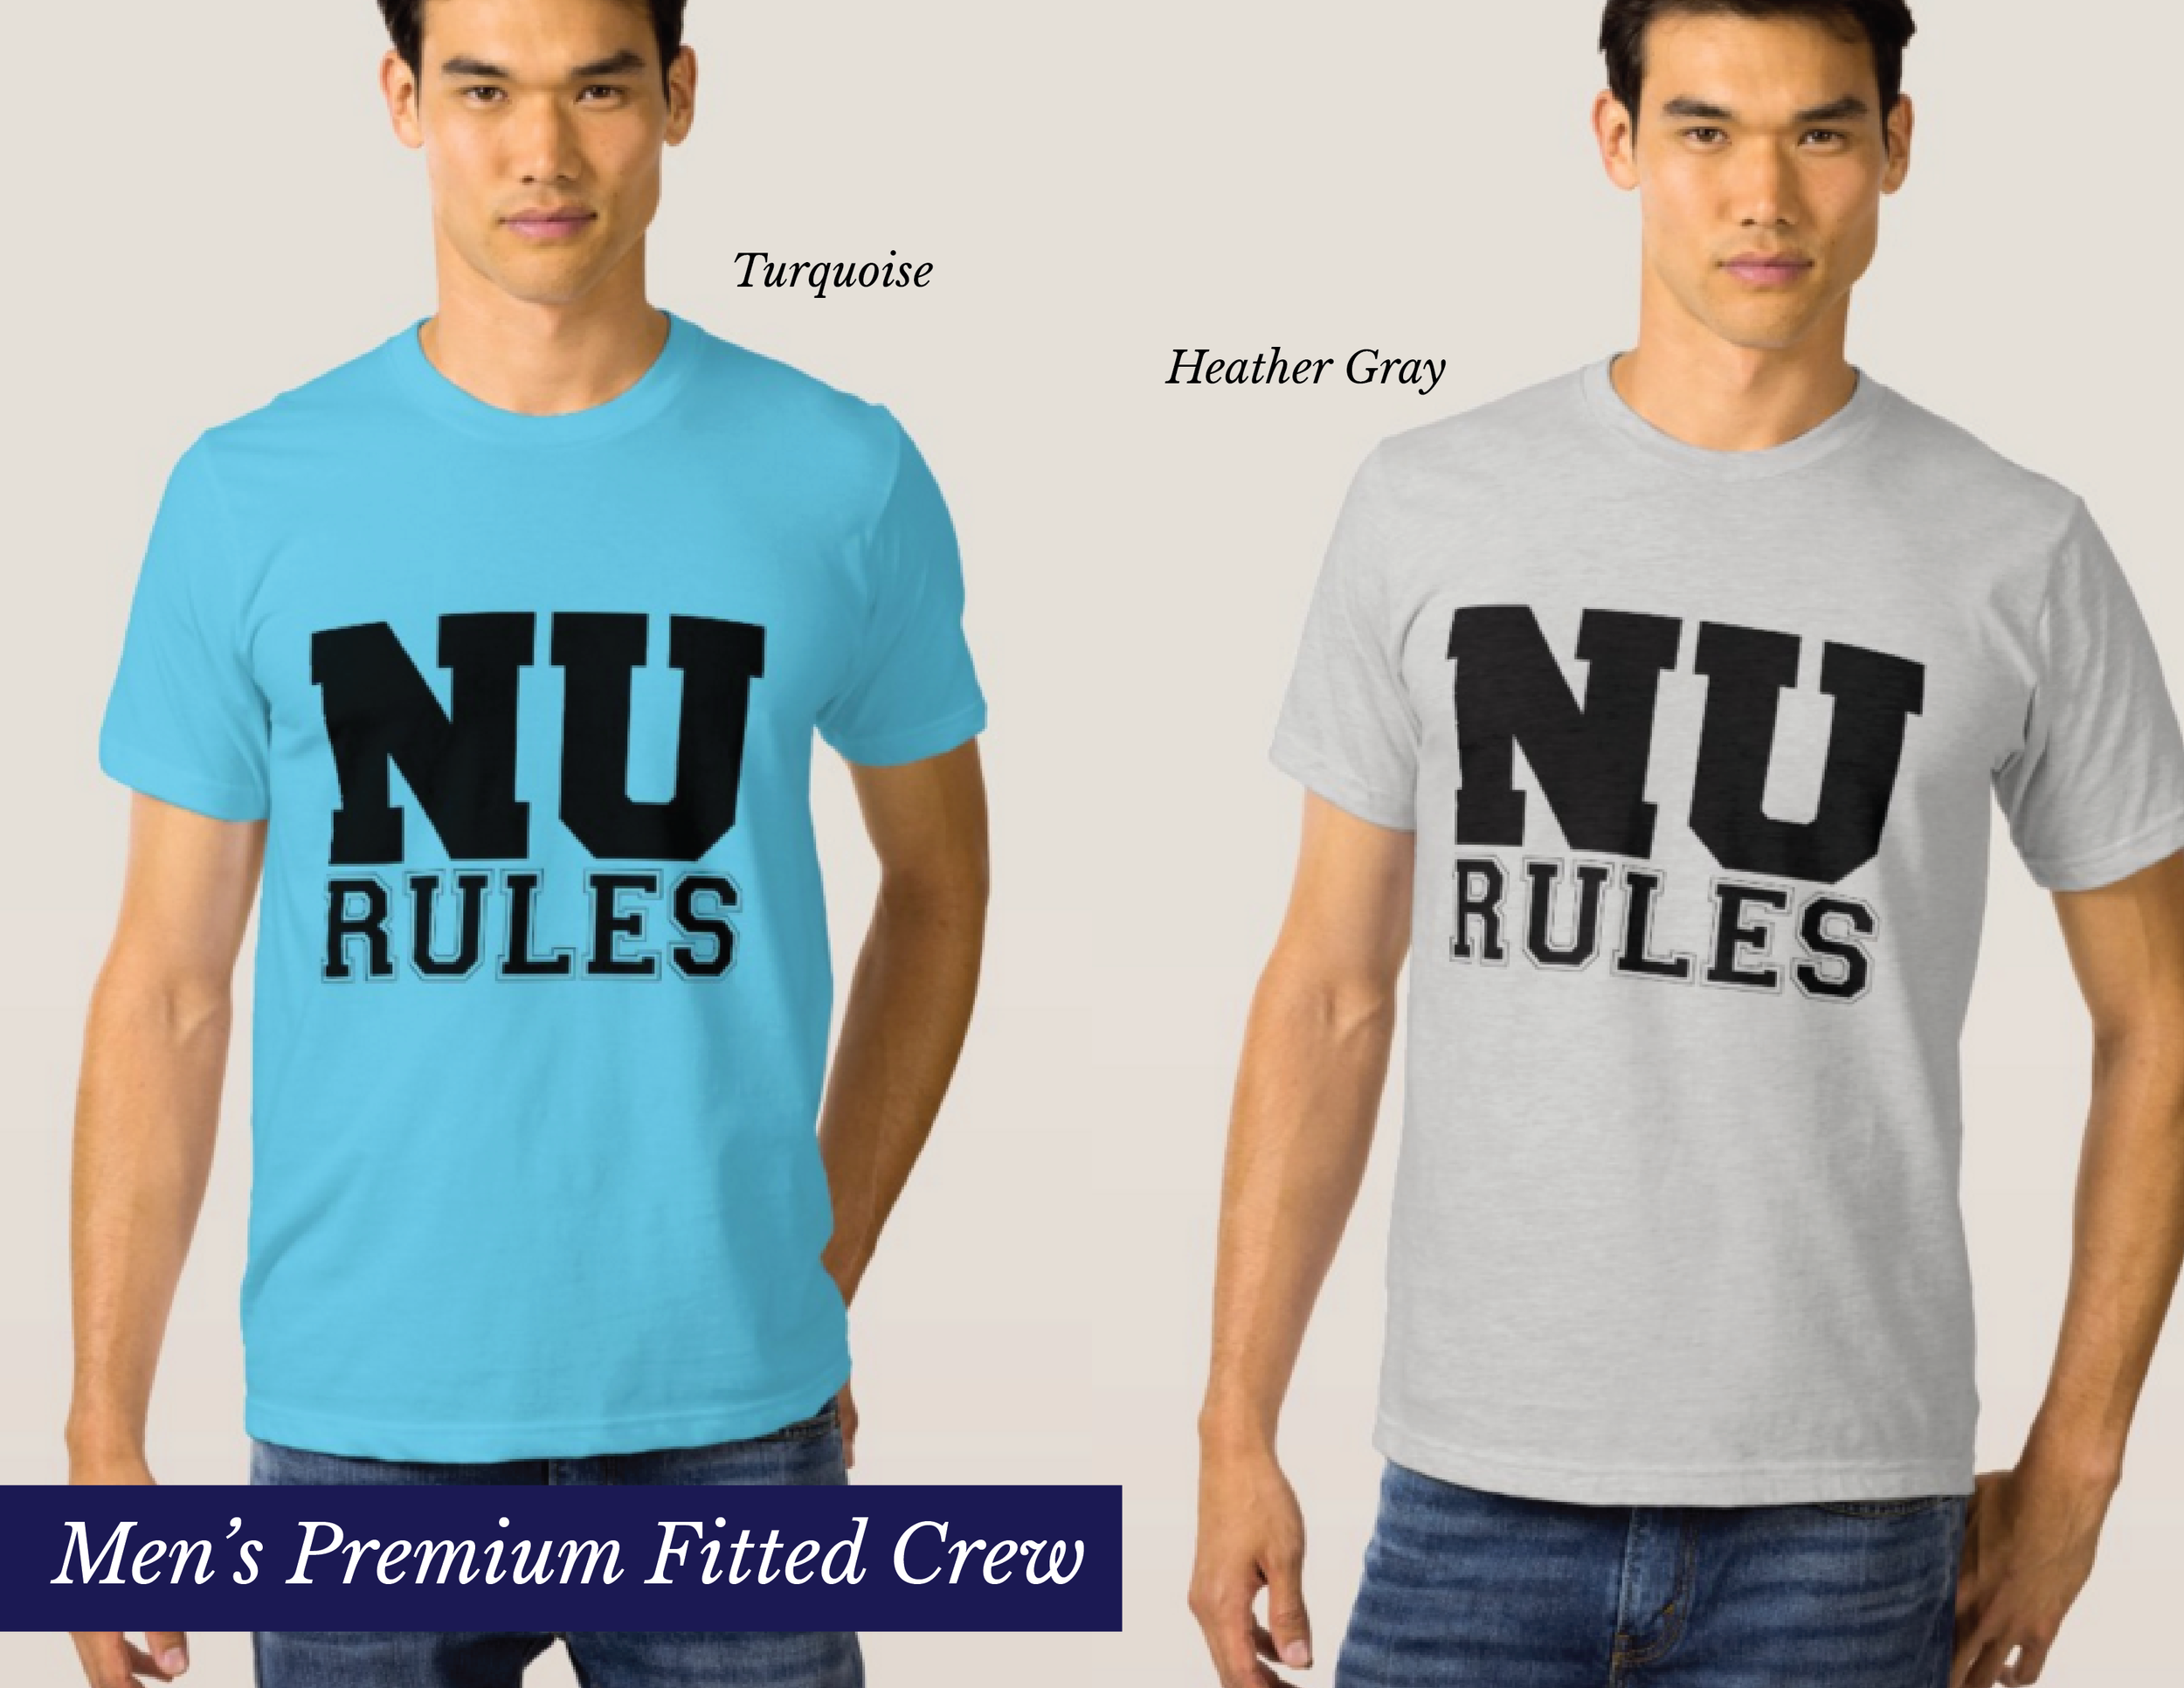 Four Colors Nu Rules Mockups-03.png